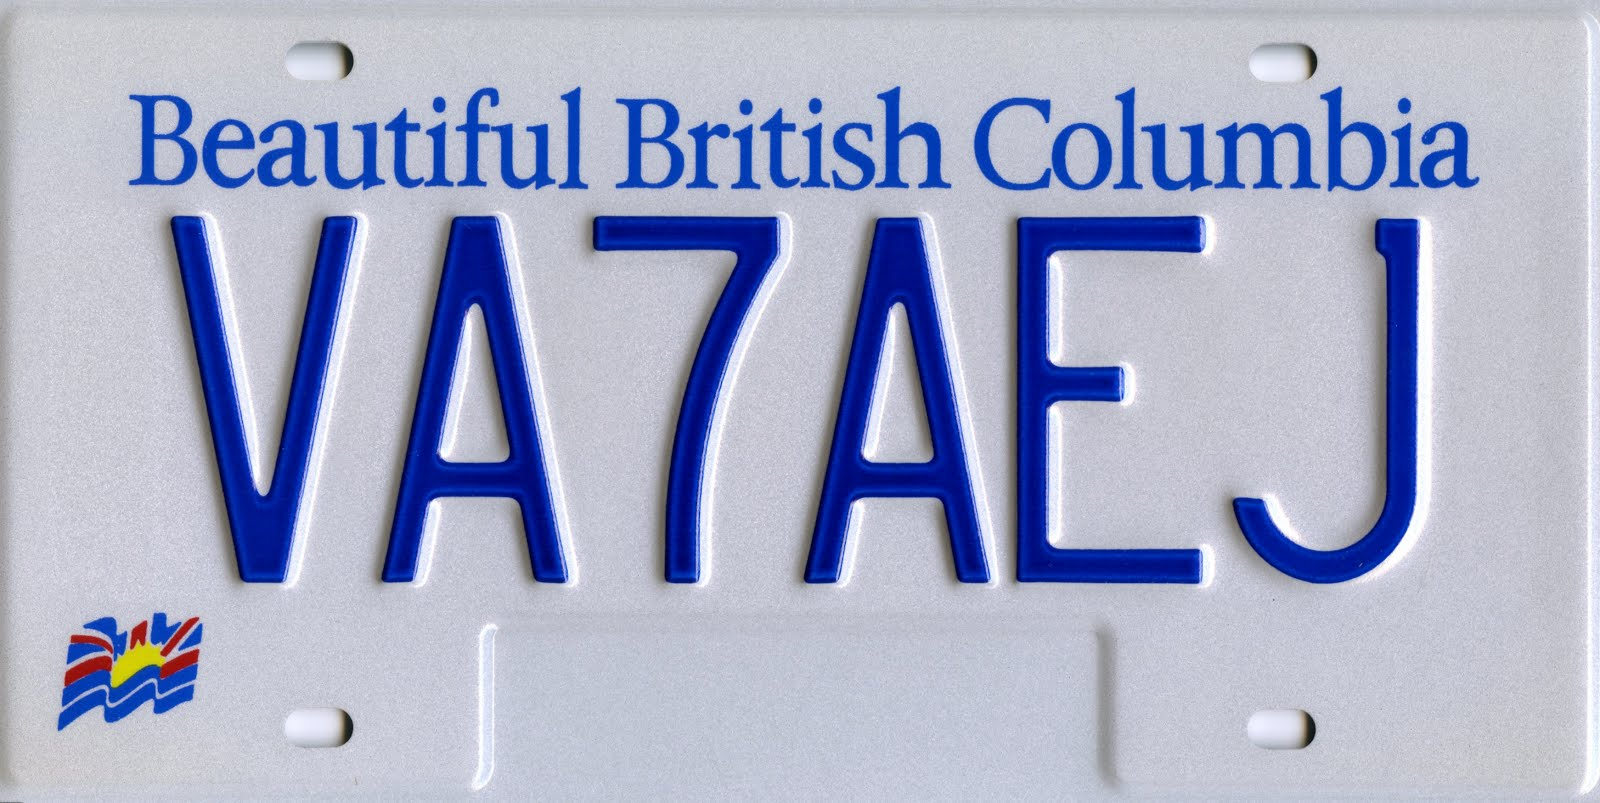 BC Ham Radio License Plate